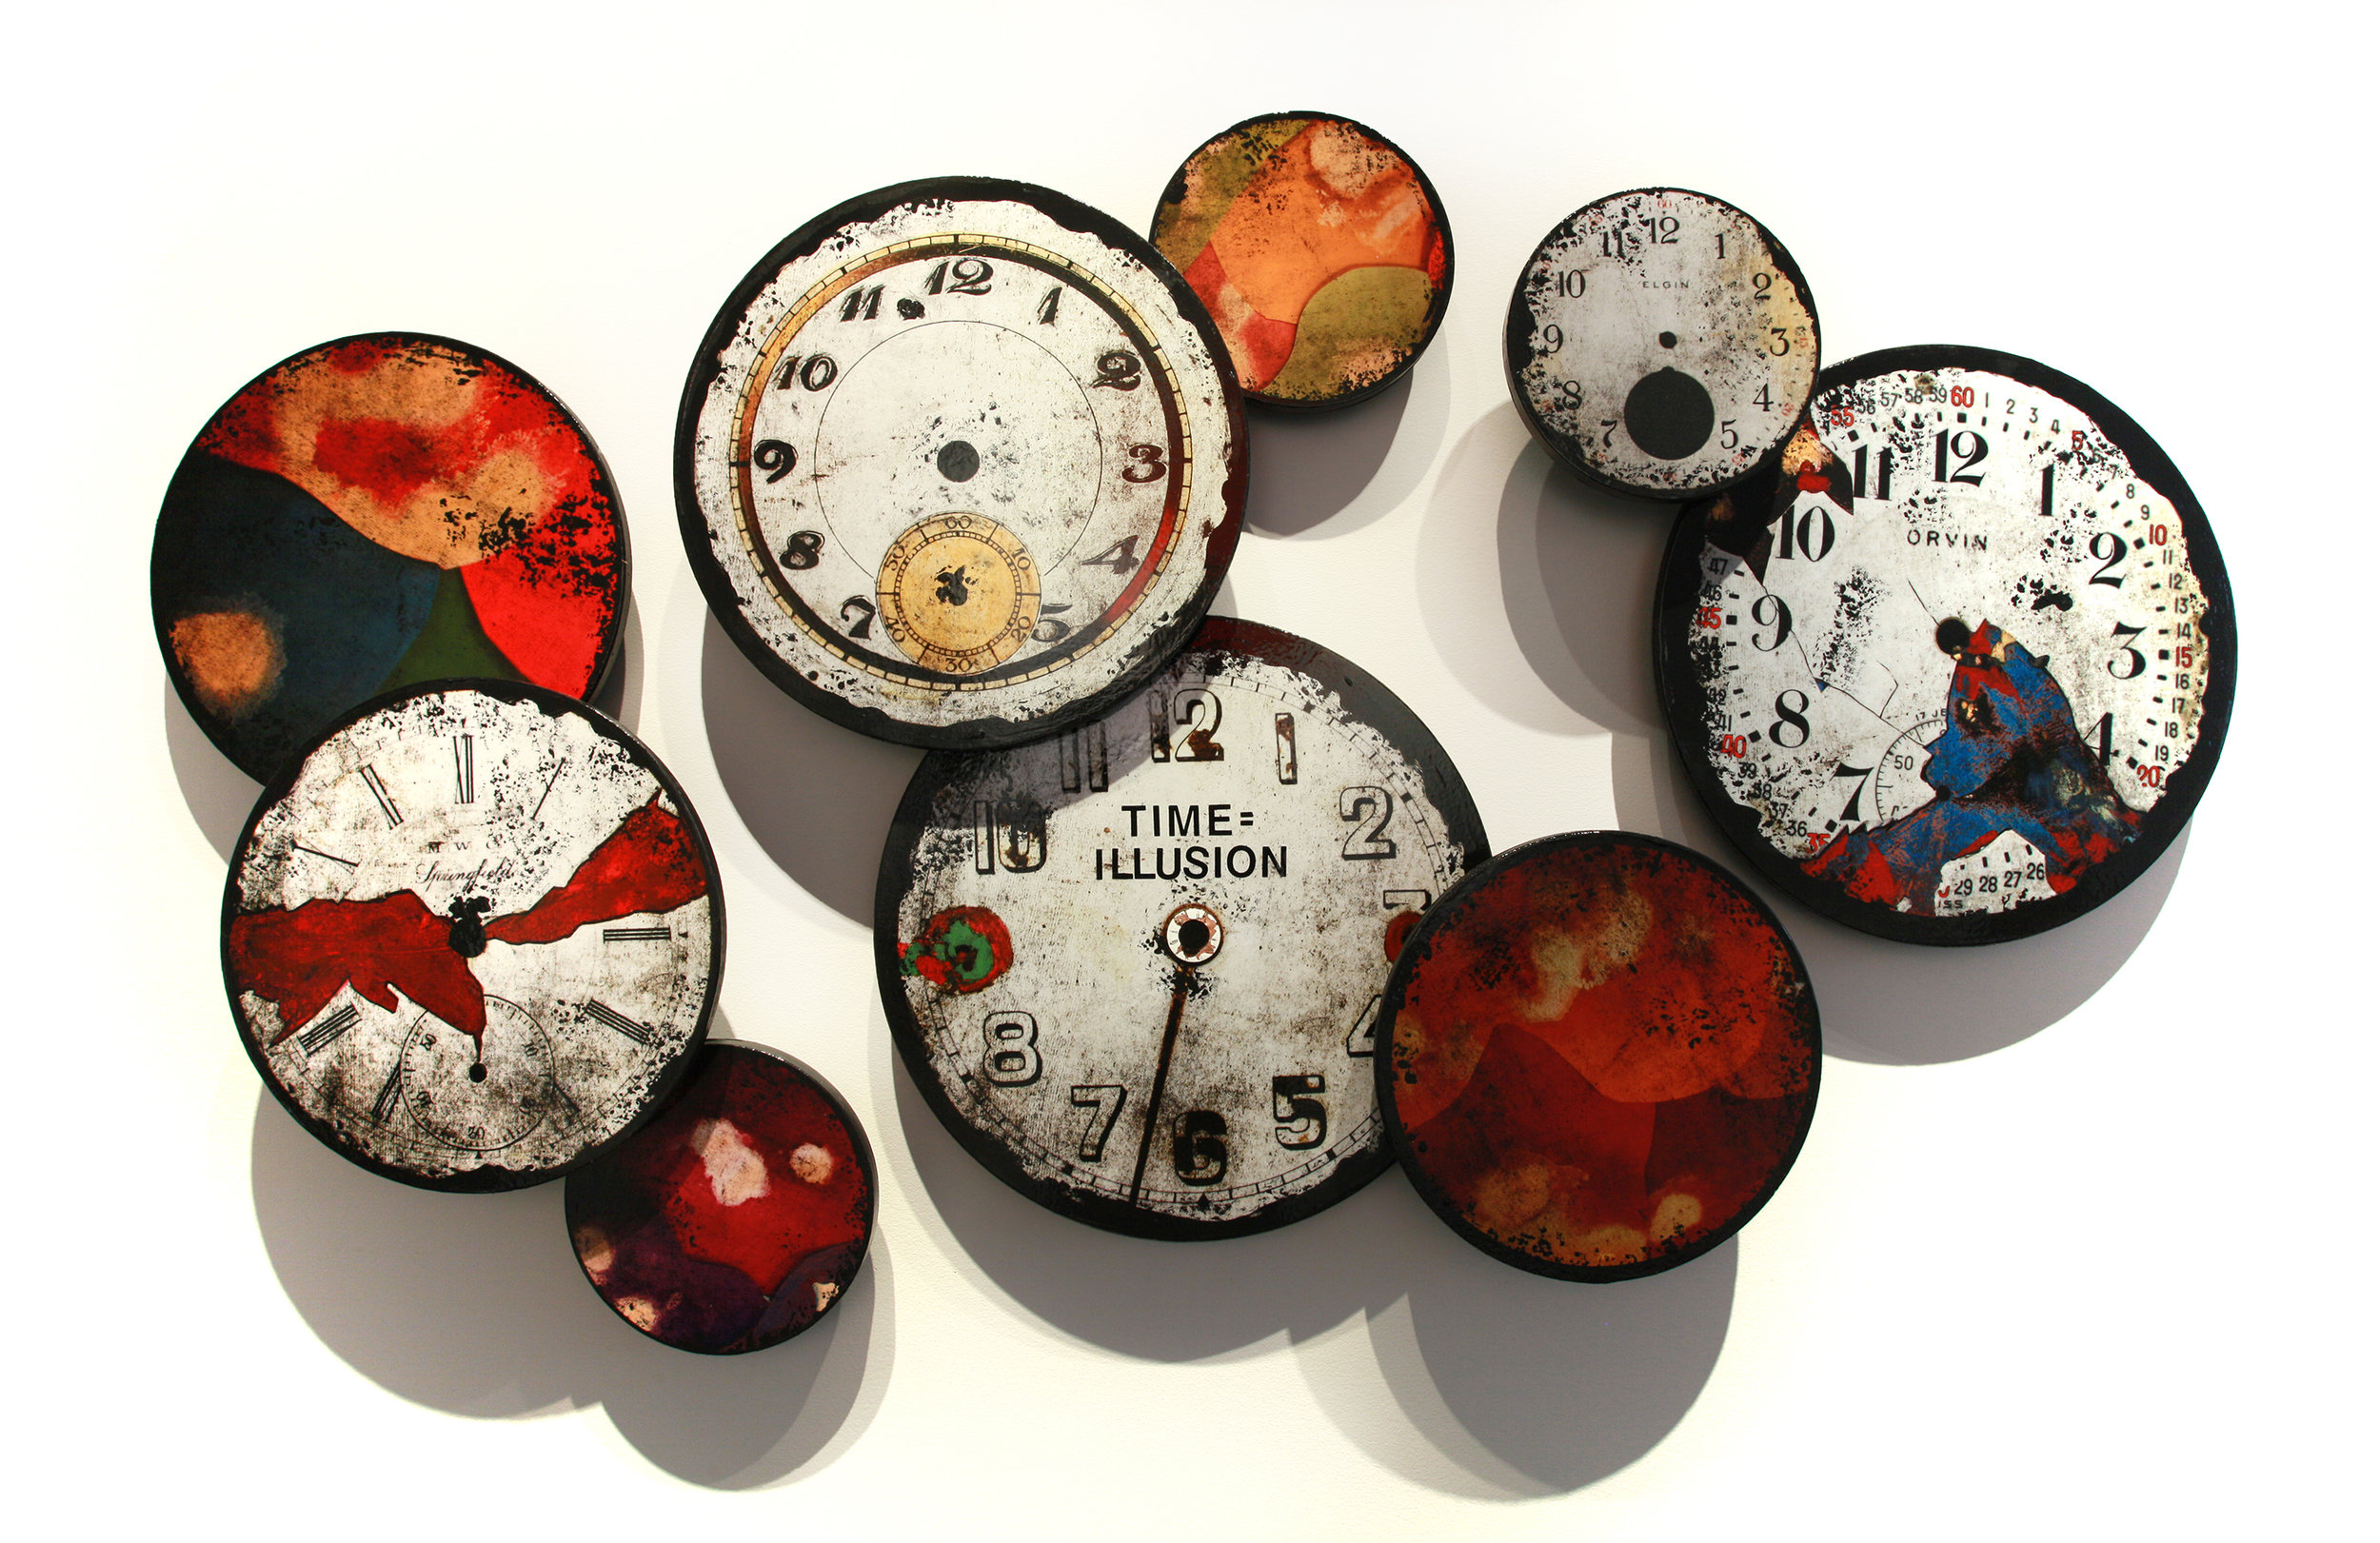 """Time = Illusion Installation, Mixed Media on 9 panels sized between 10"""" - 20"""" in diameter. As pictured here the installation is 41"""" x 69.75"""", 2016"""